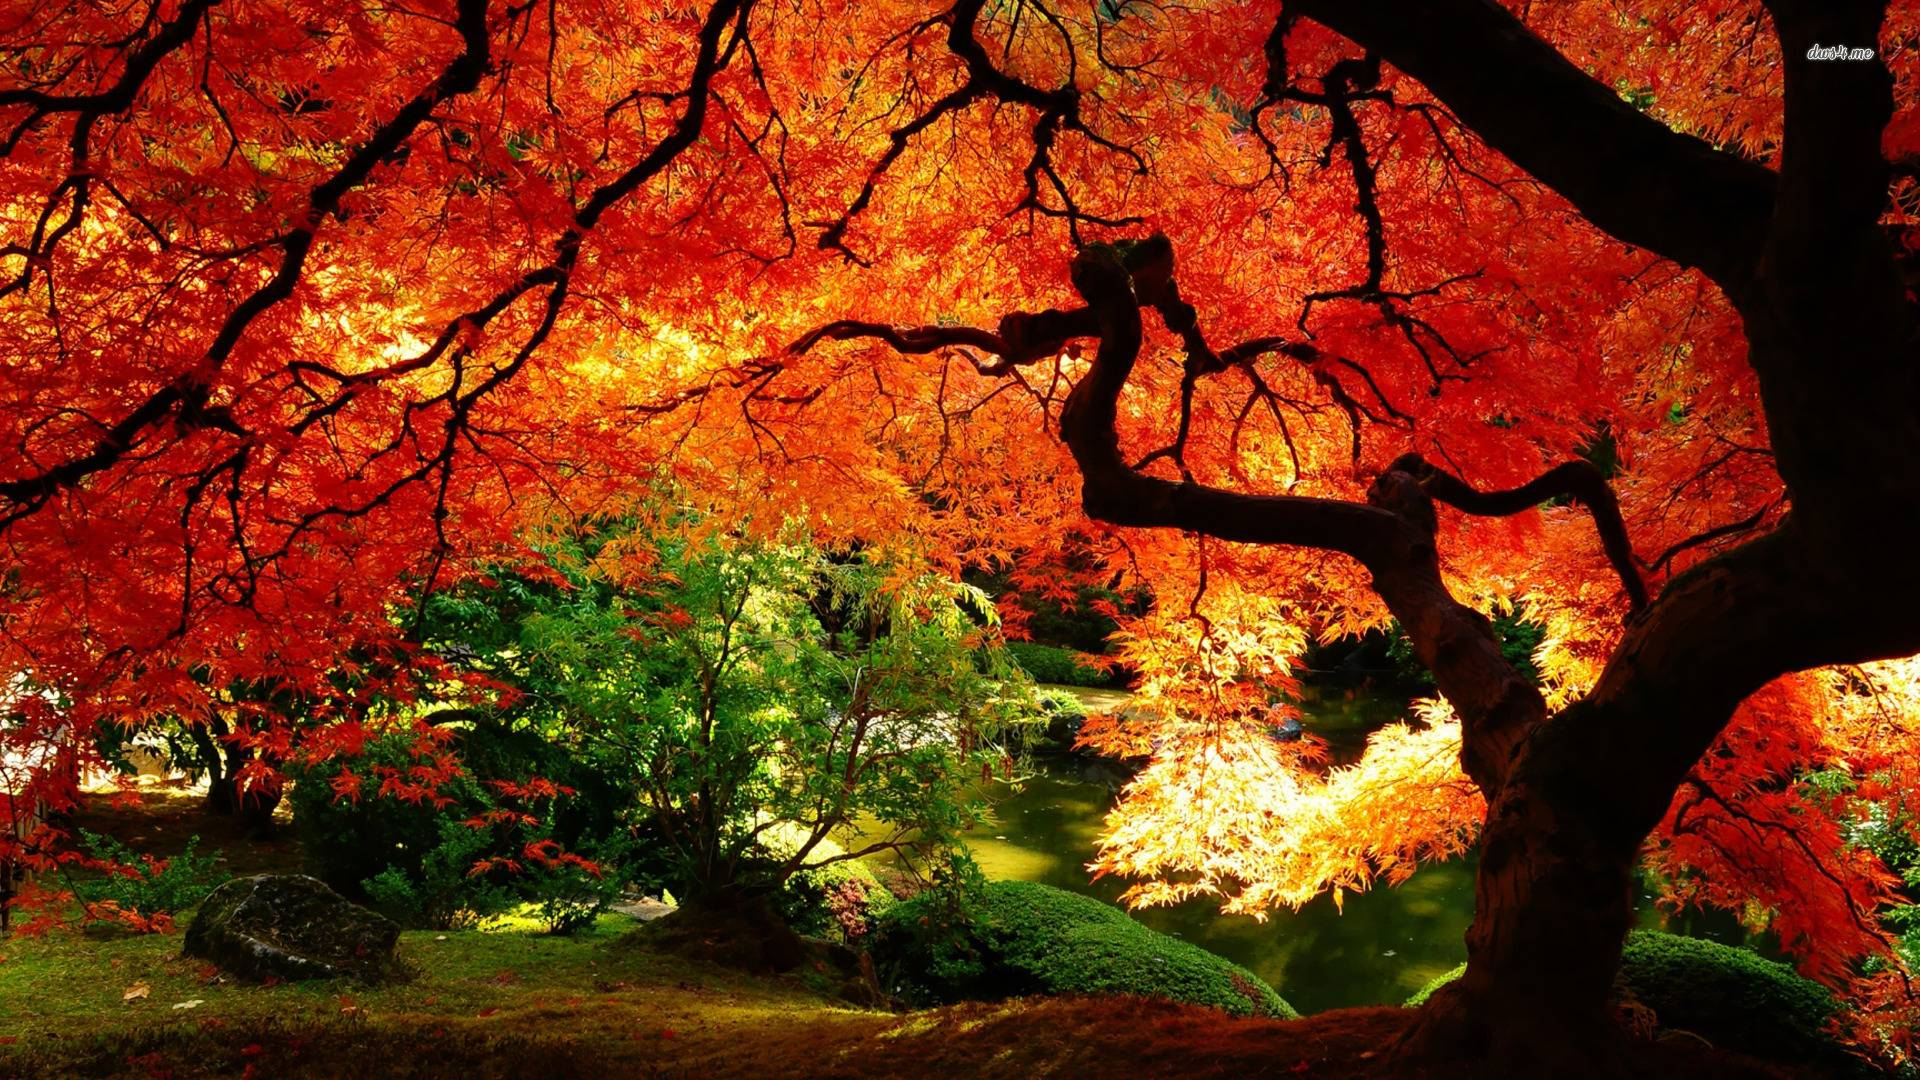 landscape autumn hd wallpaper - photo #17